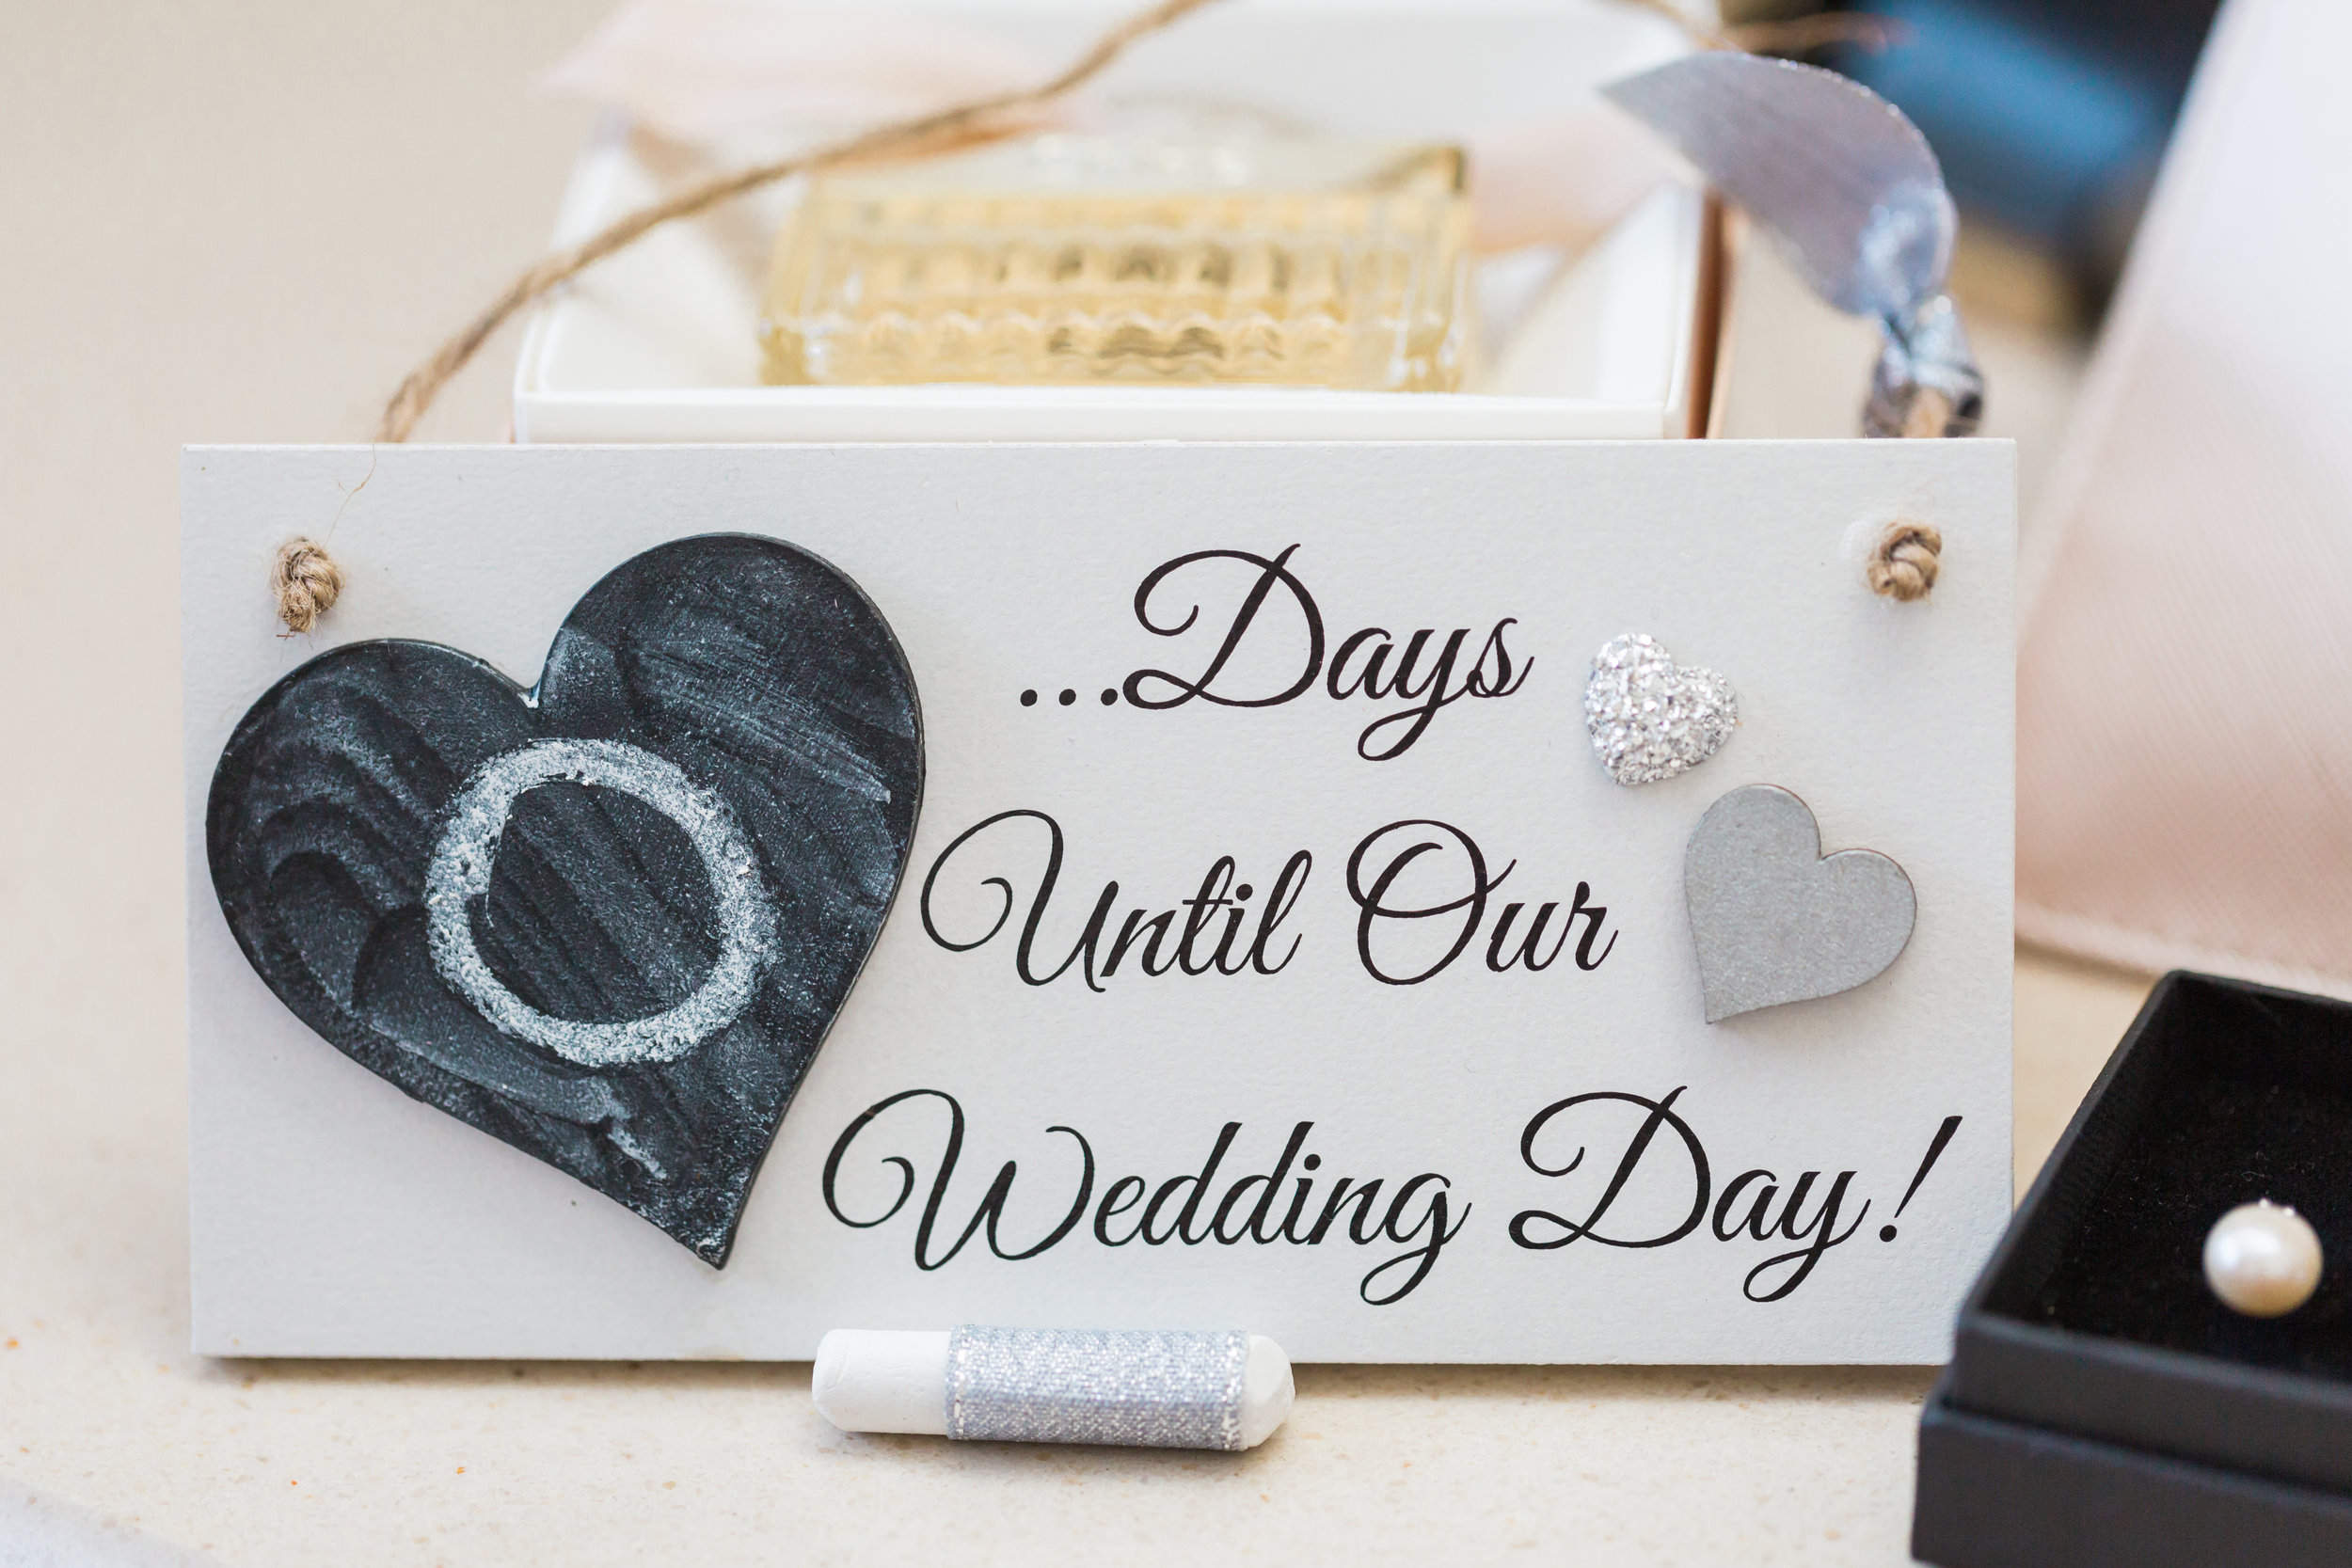 wedding day countdown ideas.jpg